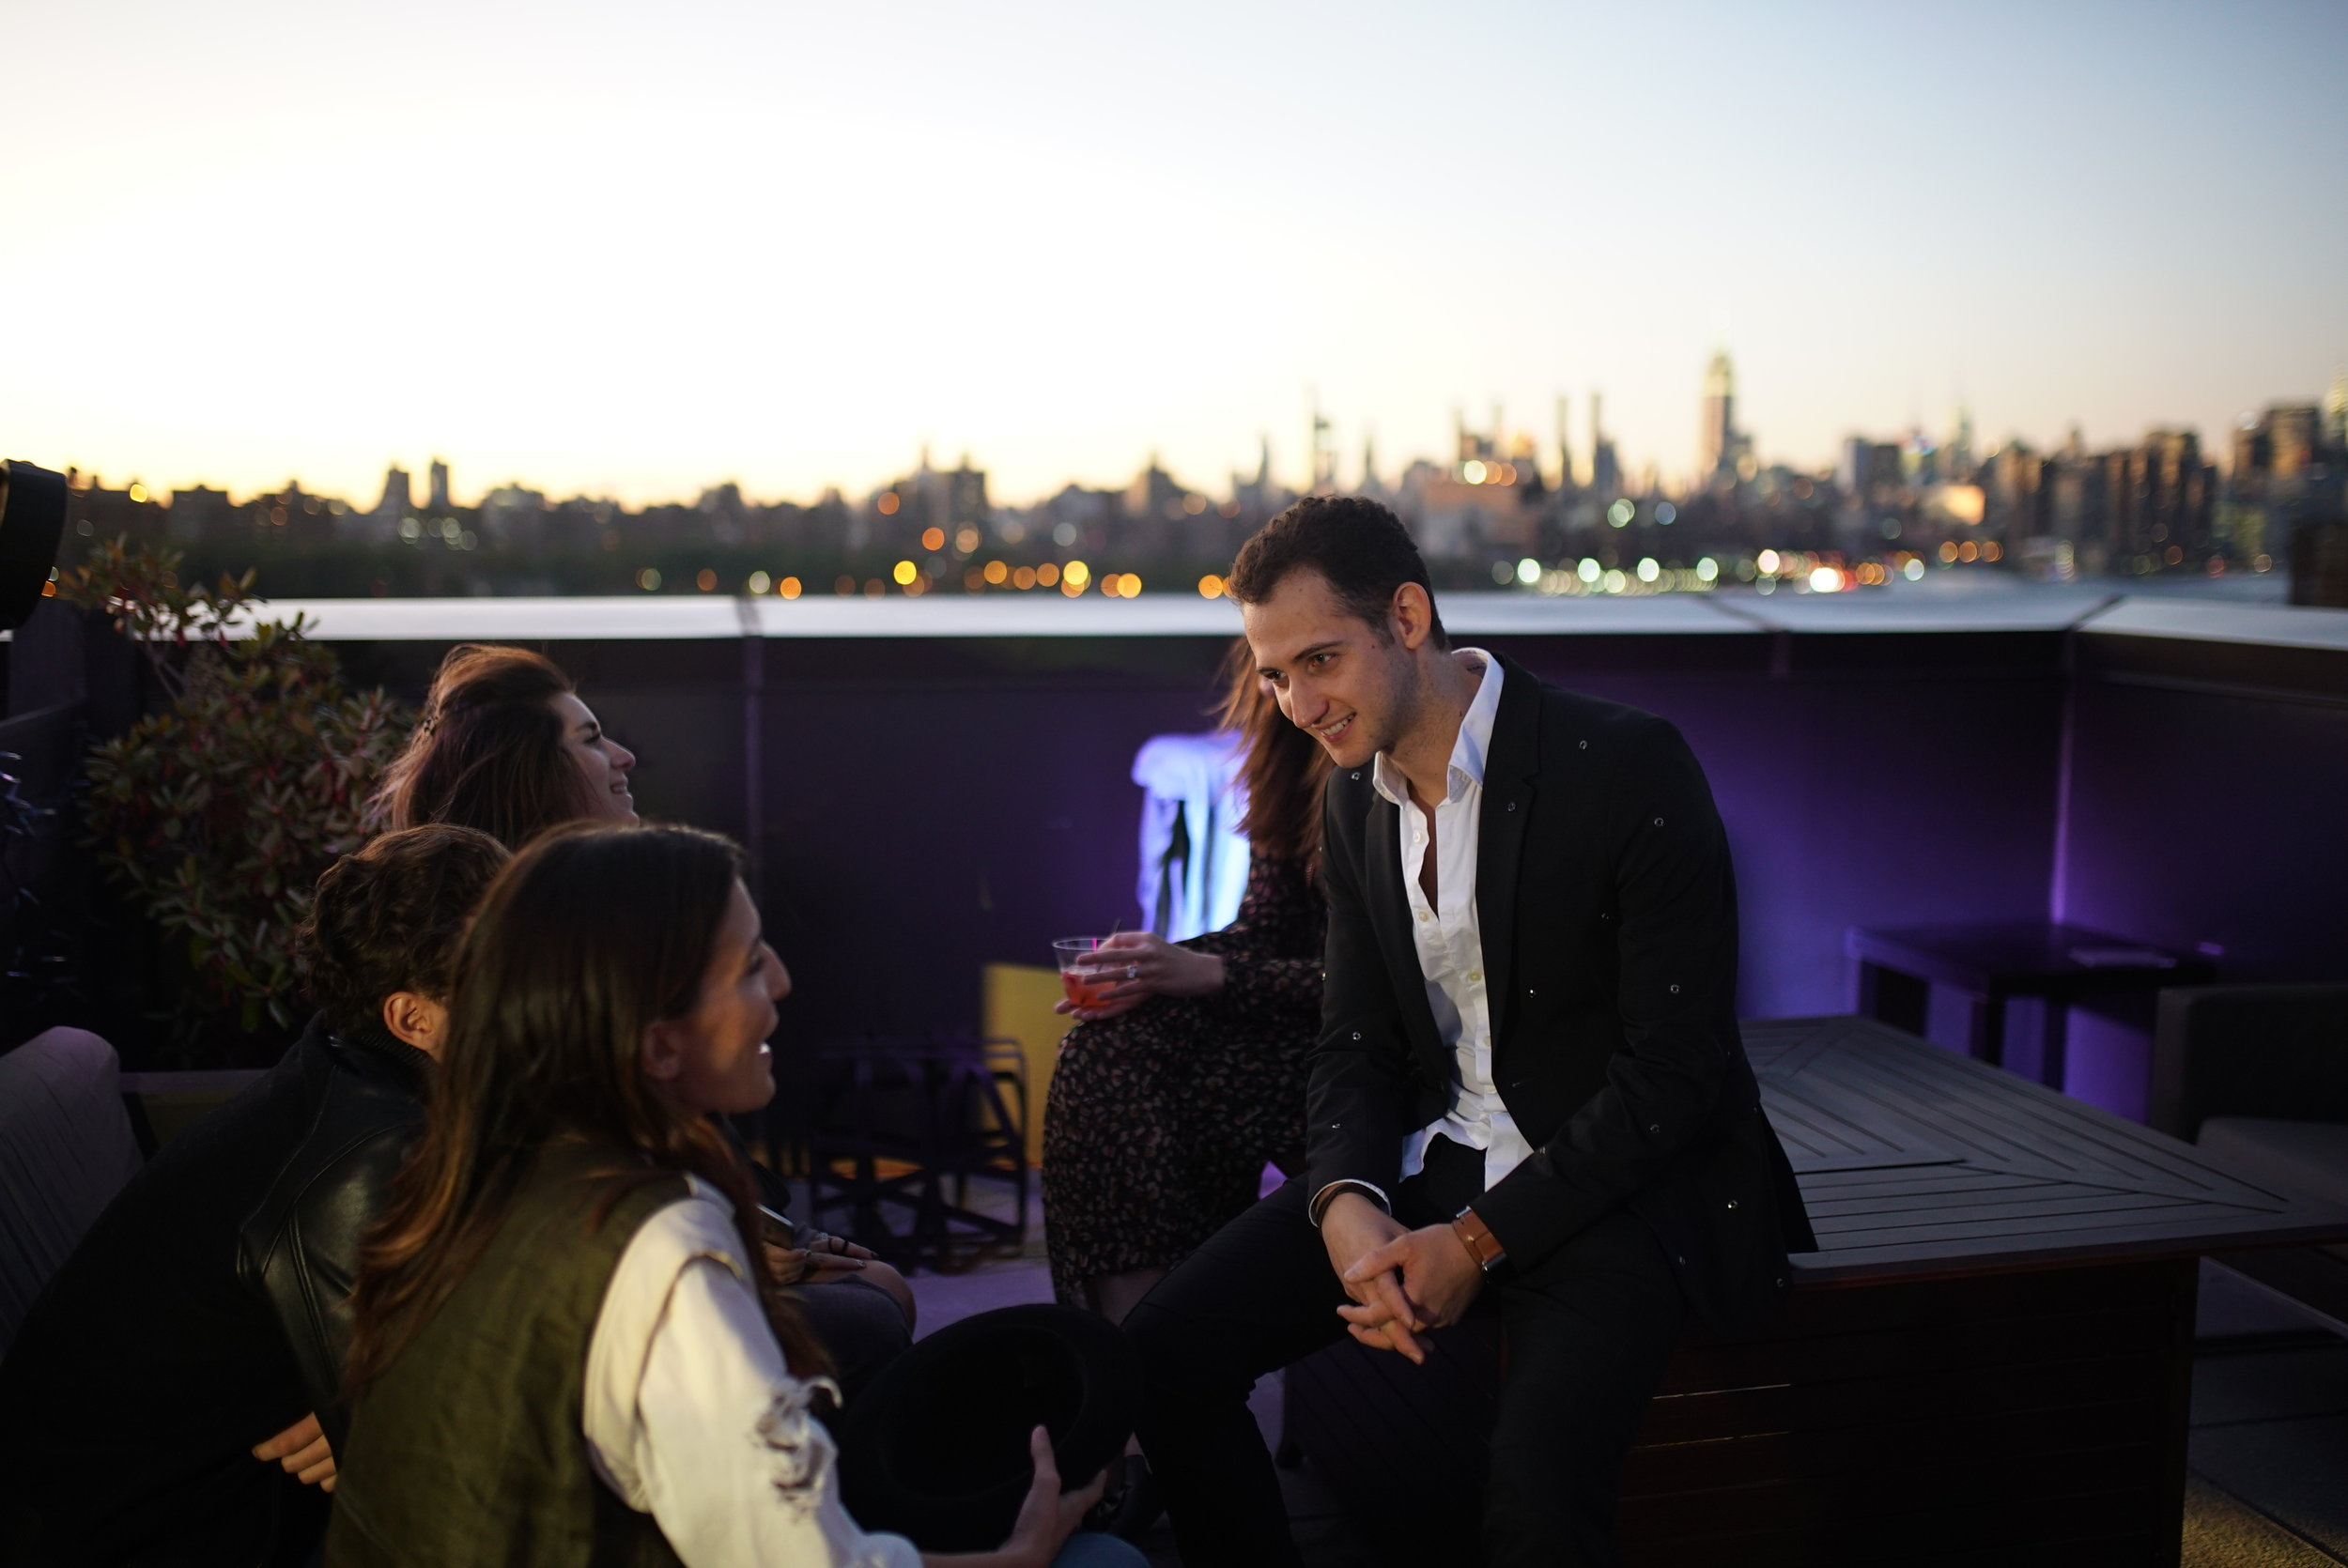 ny-events-product-launch-rooftop02944.jpg